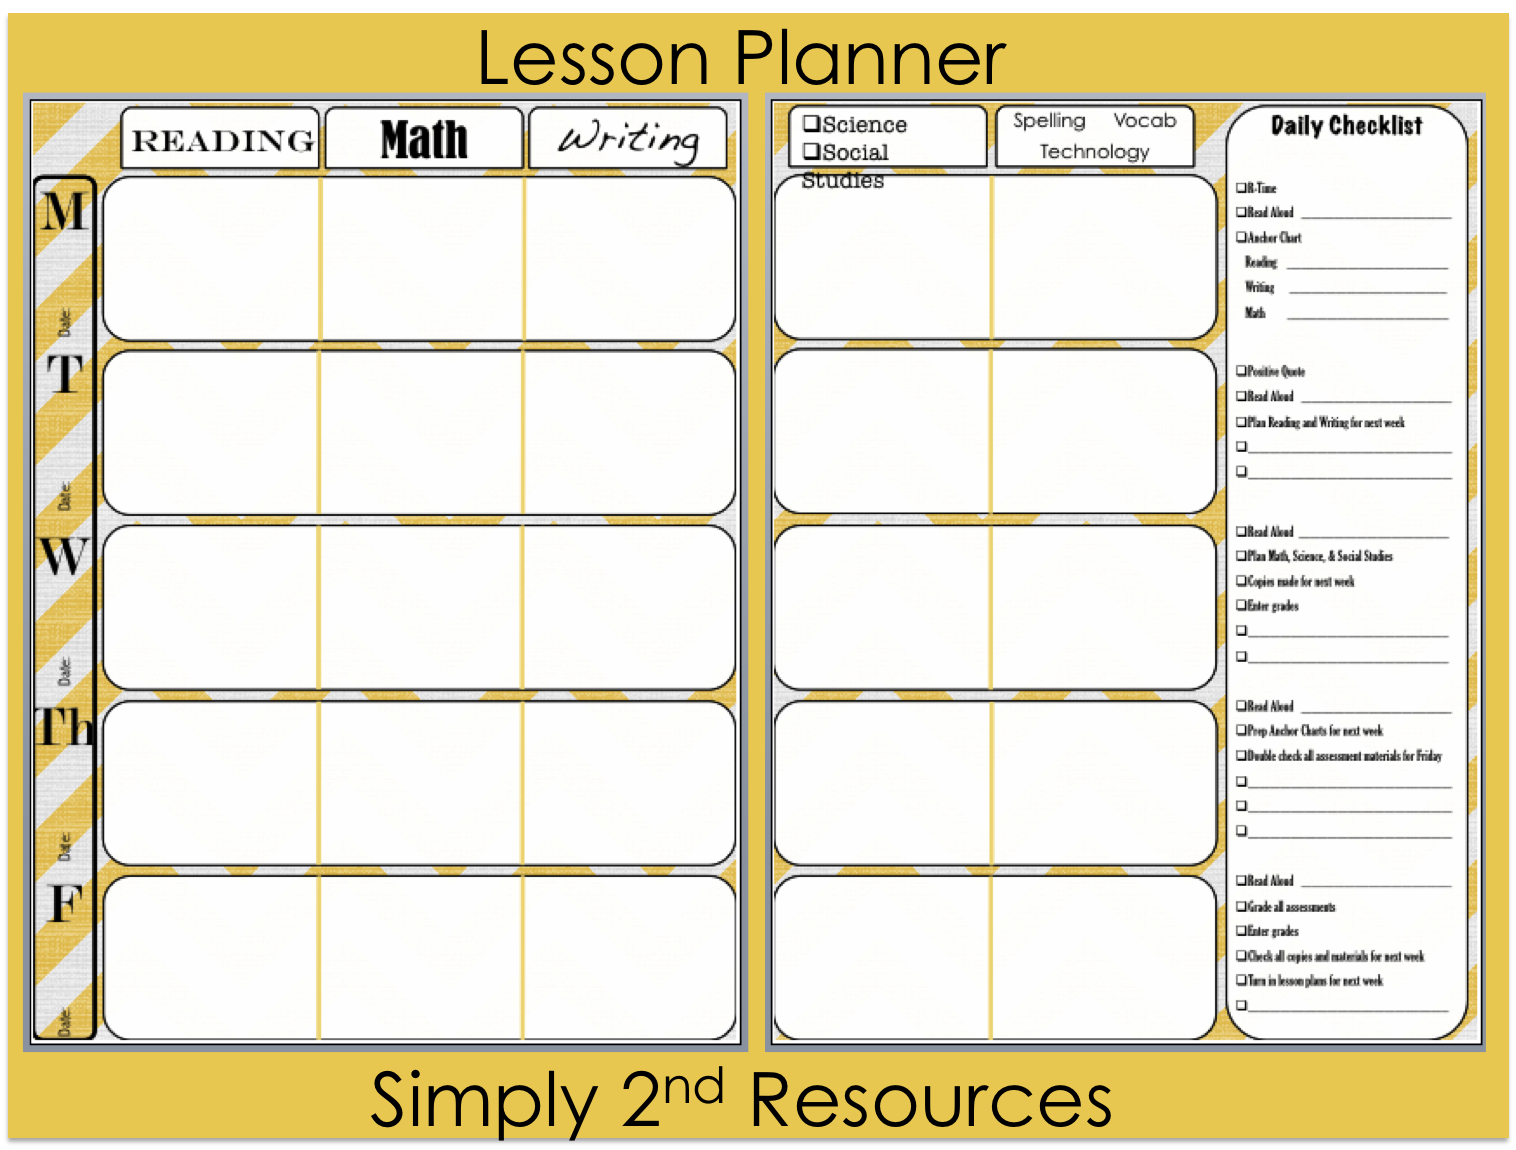 Simply 2nd resources lesson plan template so excited to for Free lesson plan templates